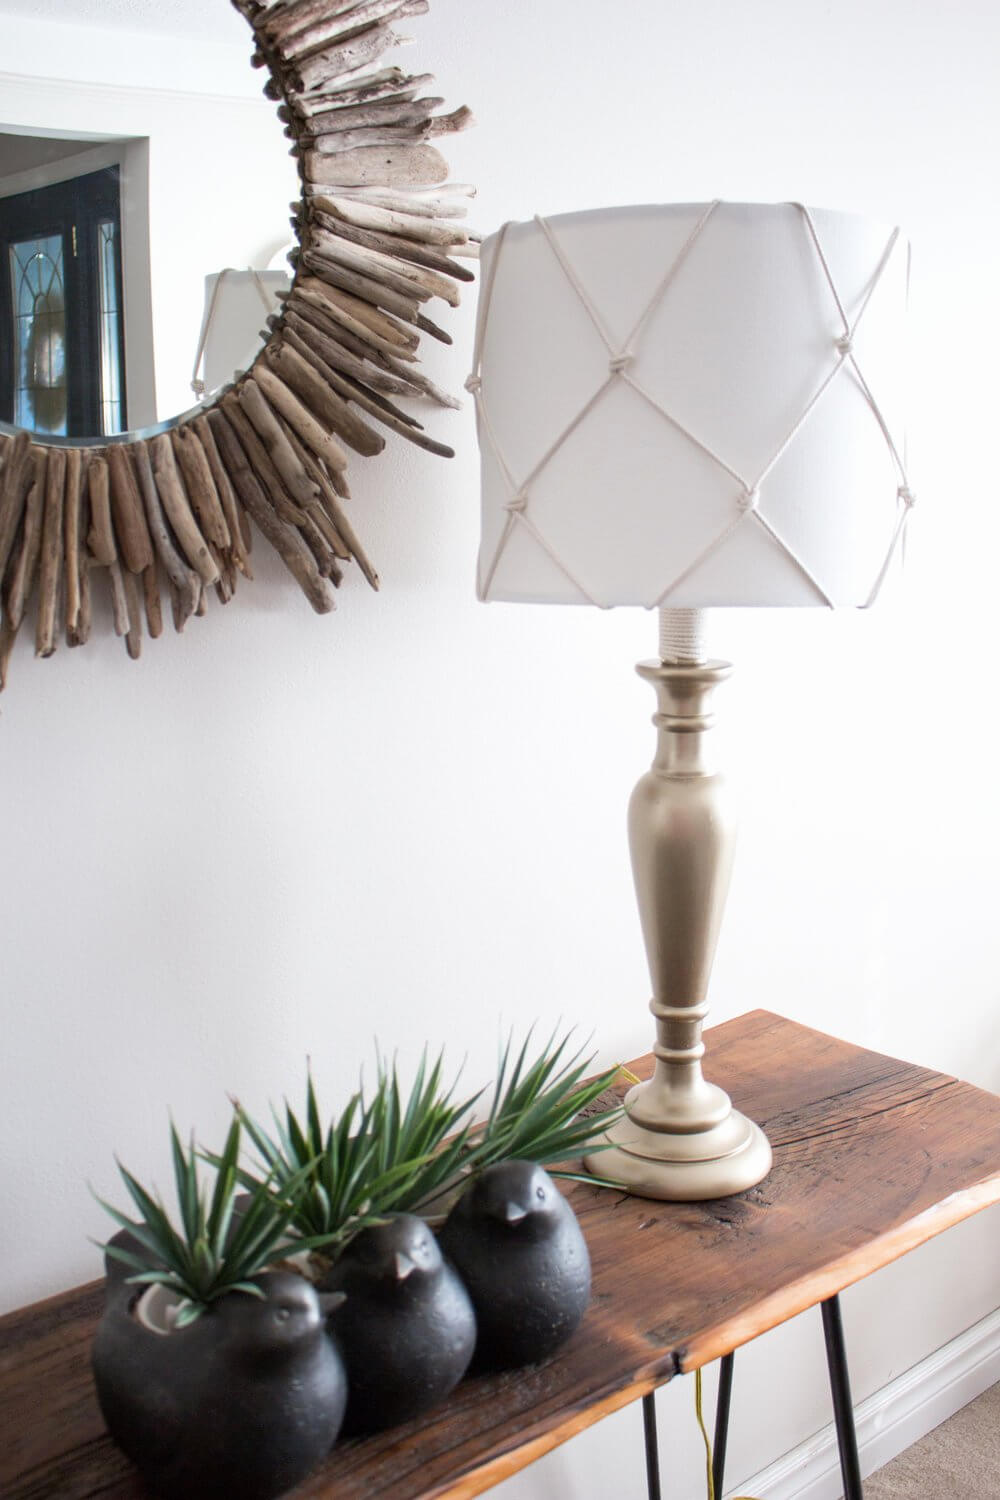 Net Wrapped Lamp Shade and Driftwood Mirror